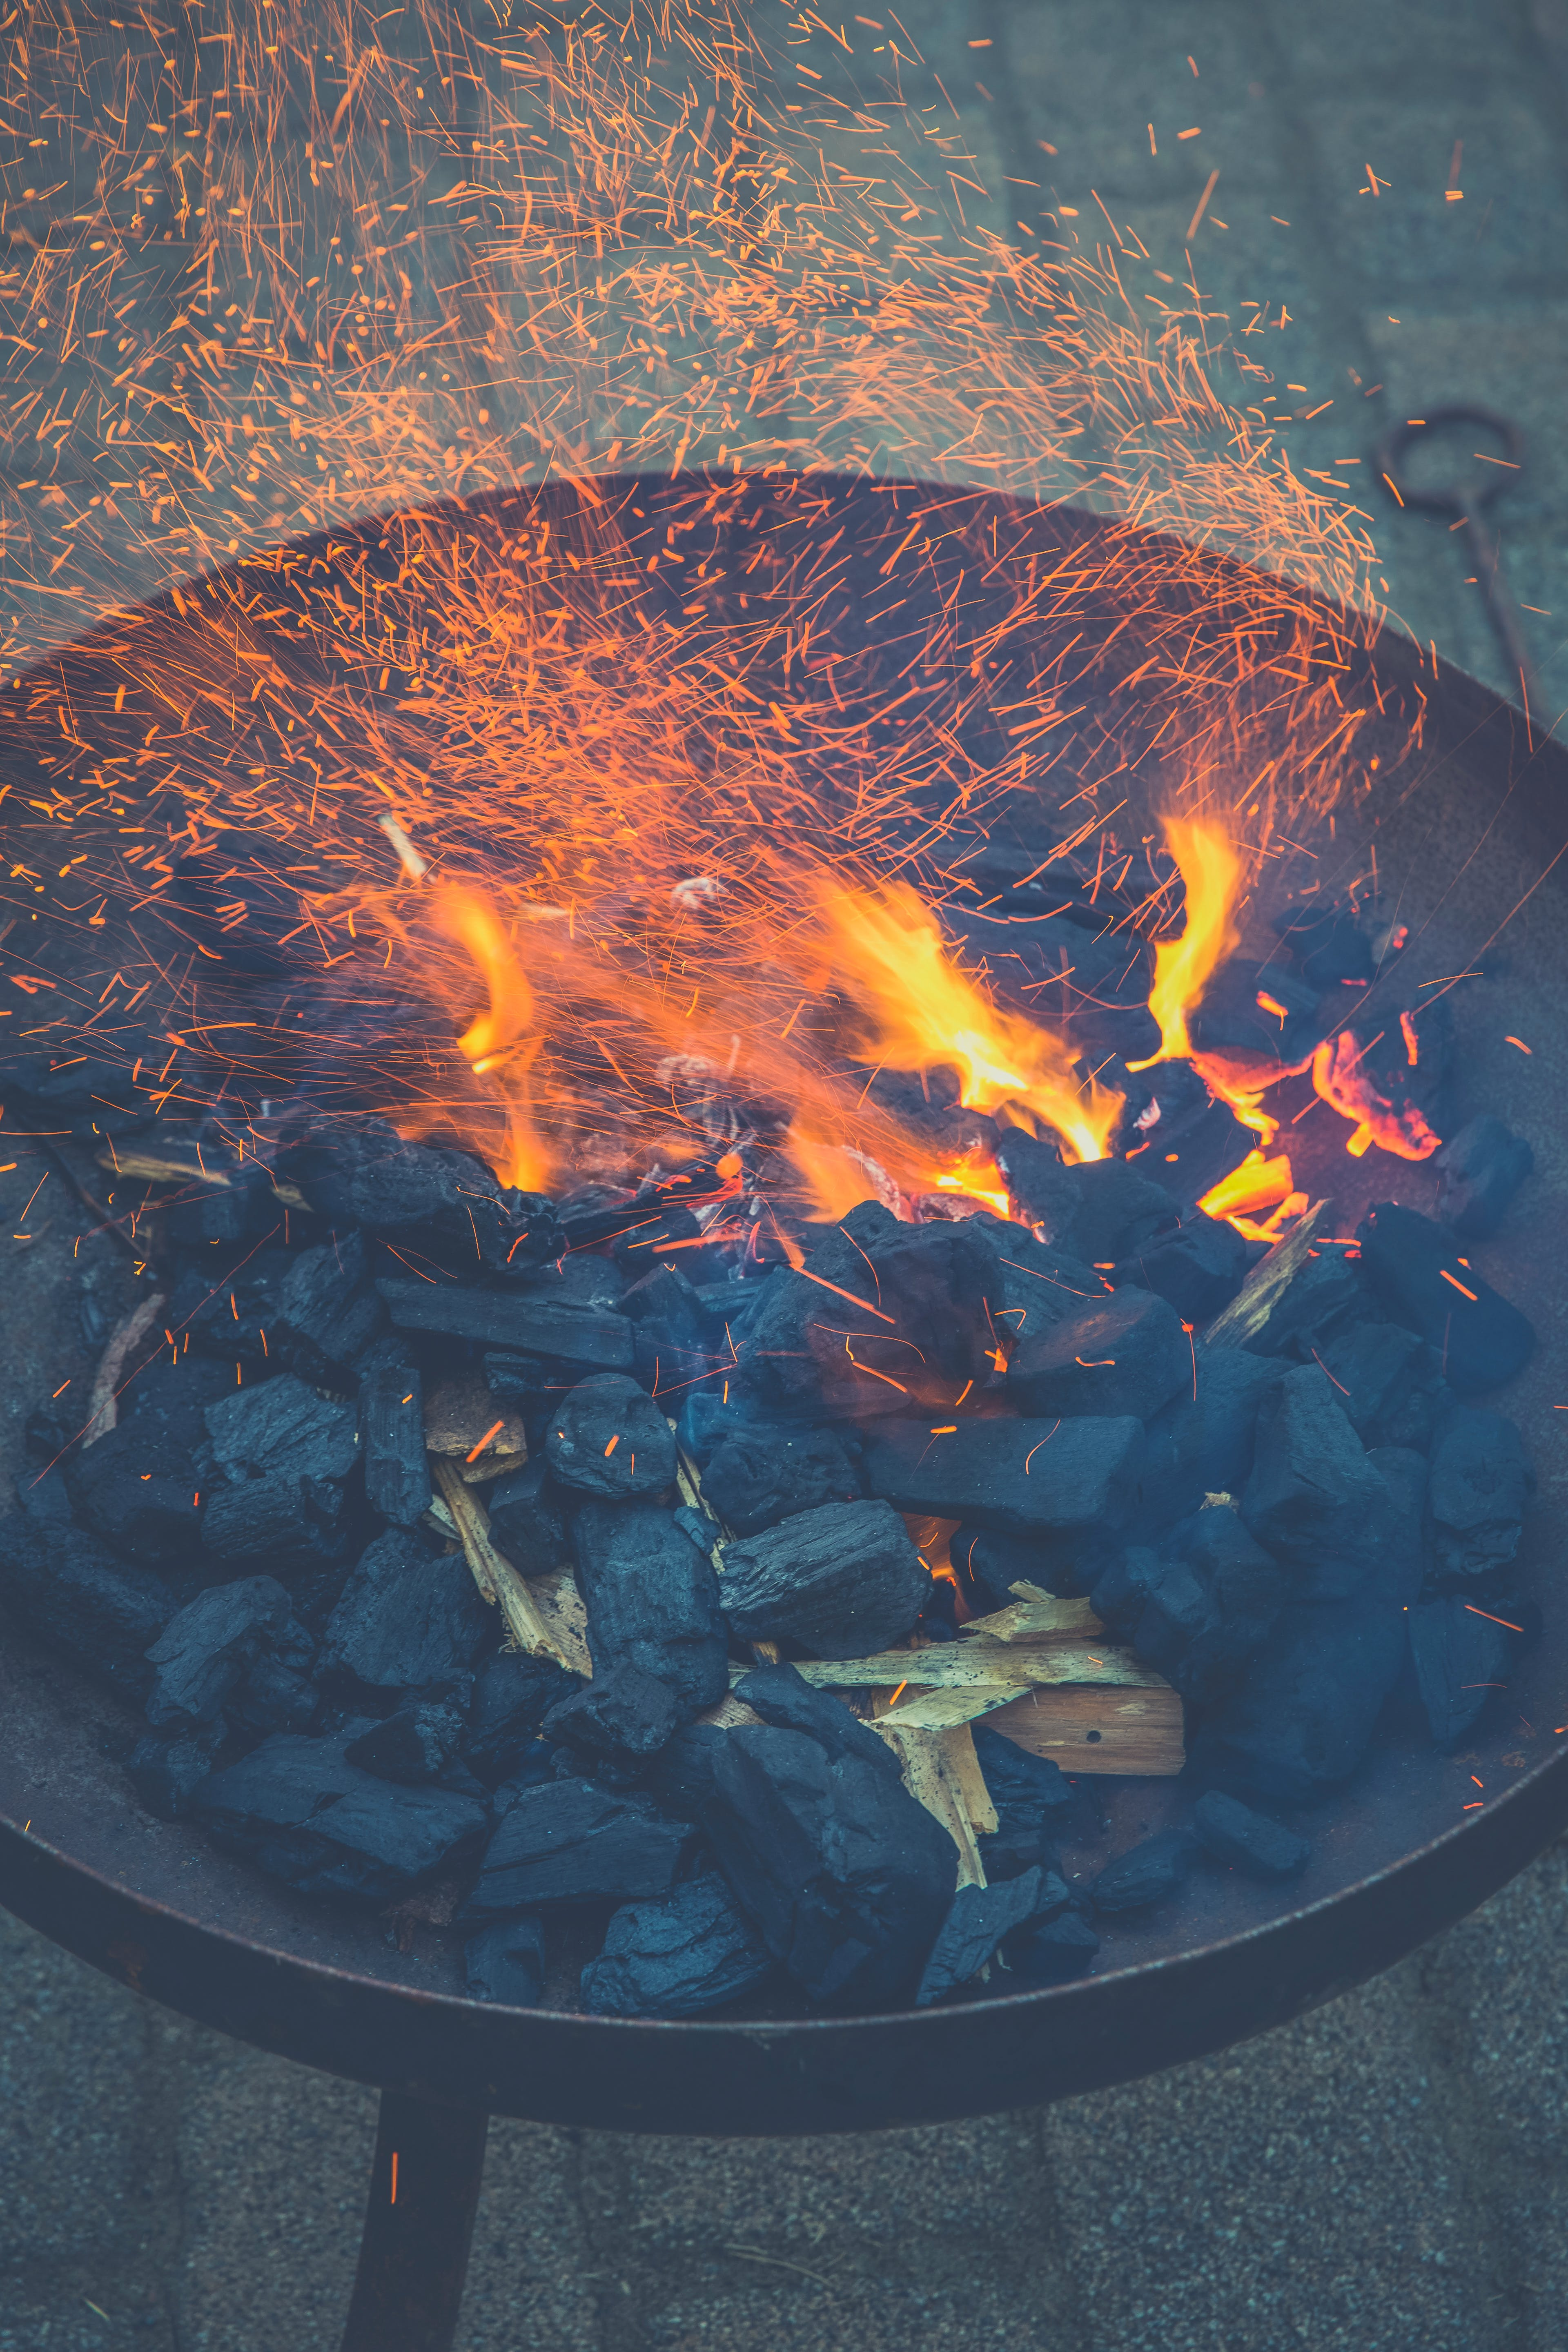 Black Charcoal With Fire on Black Round Steel Bowl